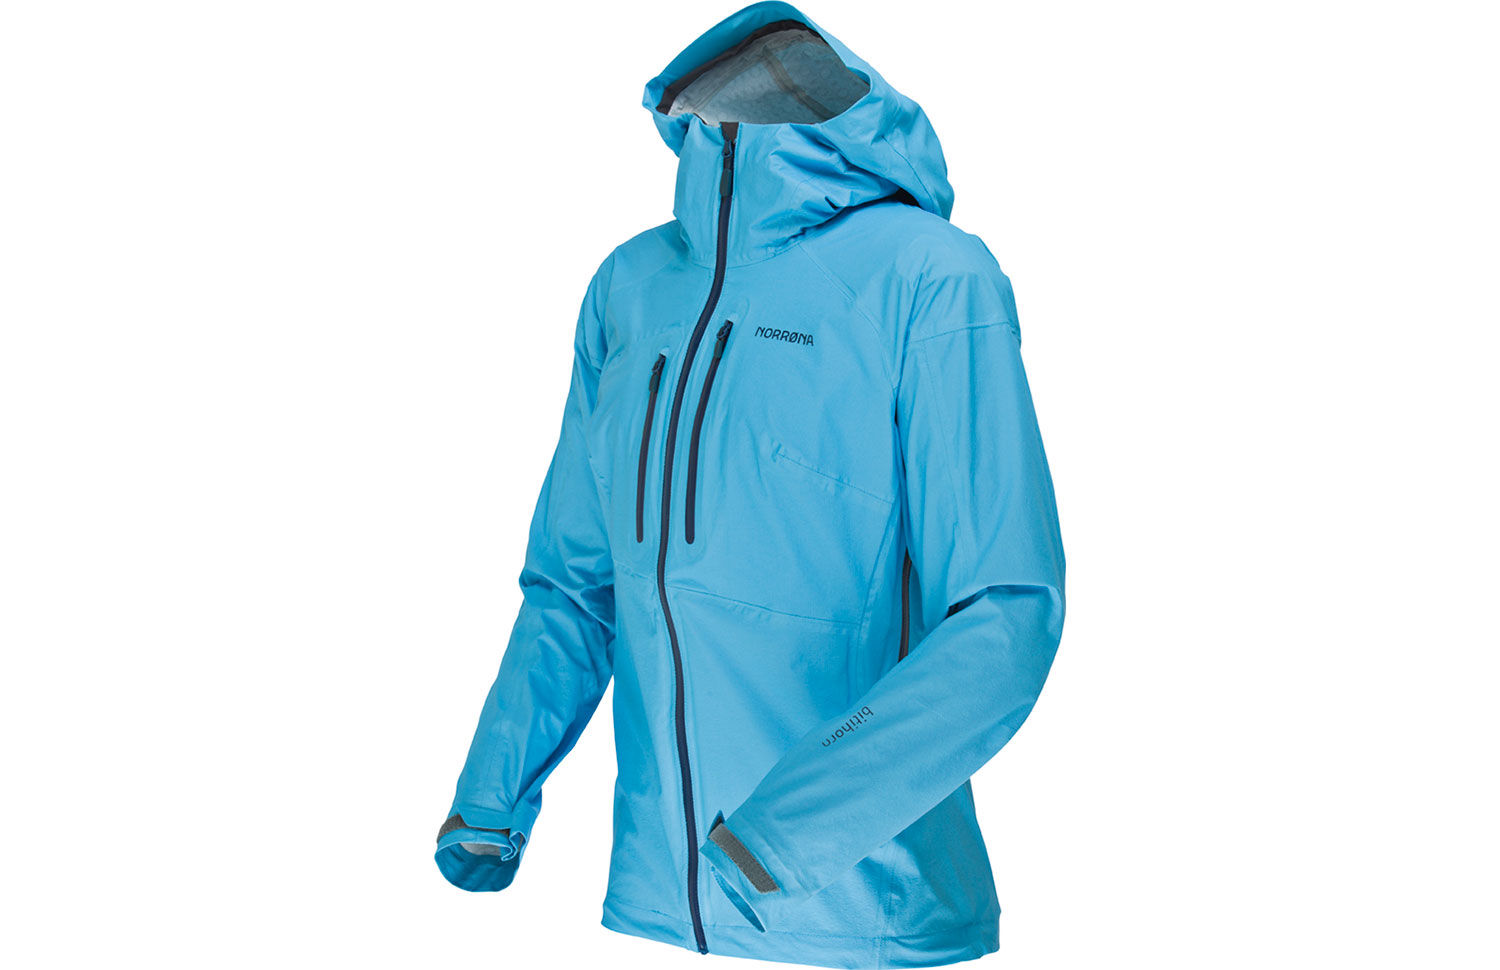 bitihorn dri1 jacket for women blue